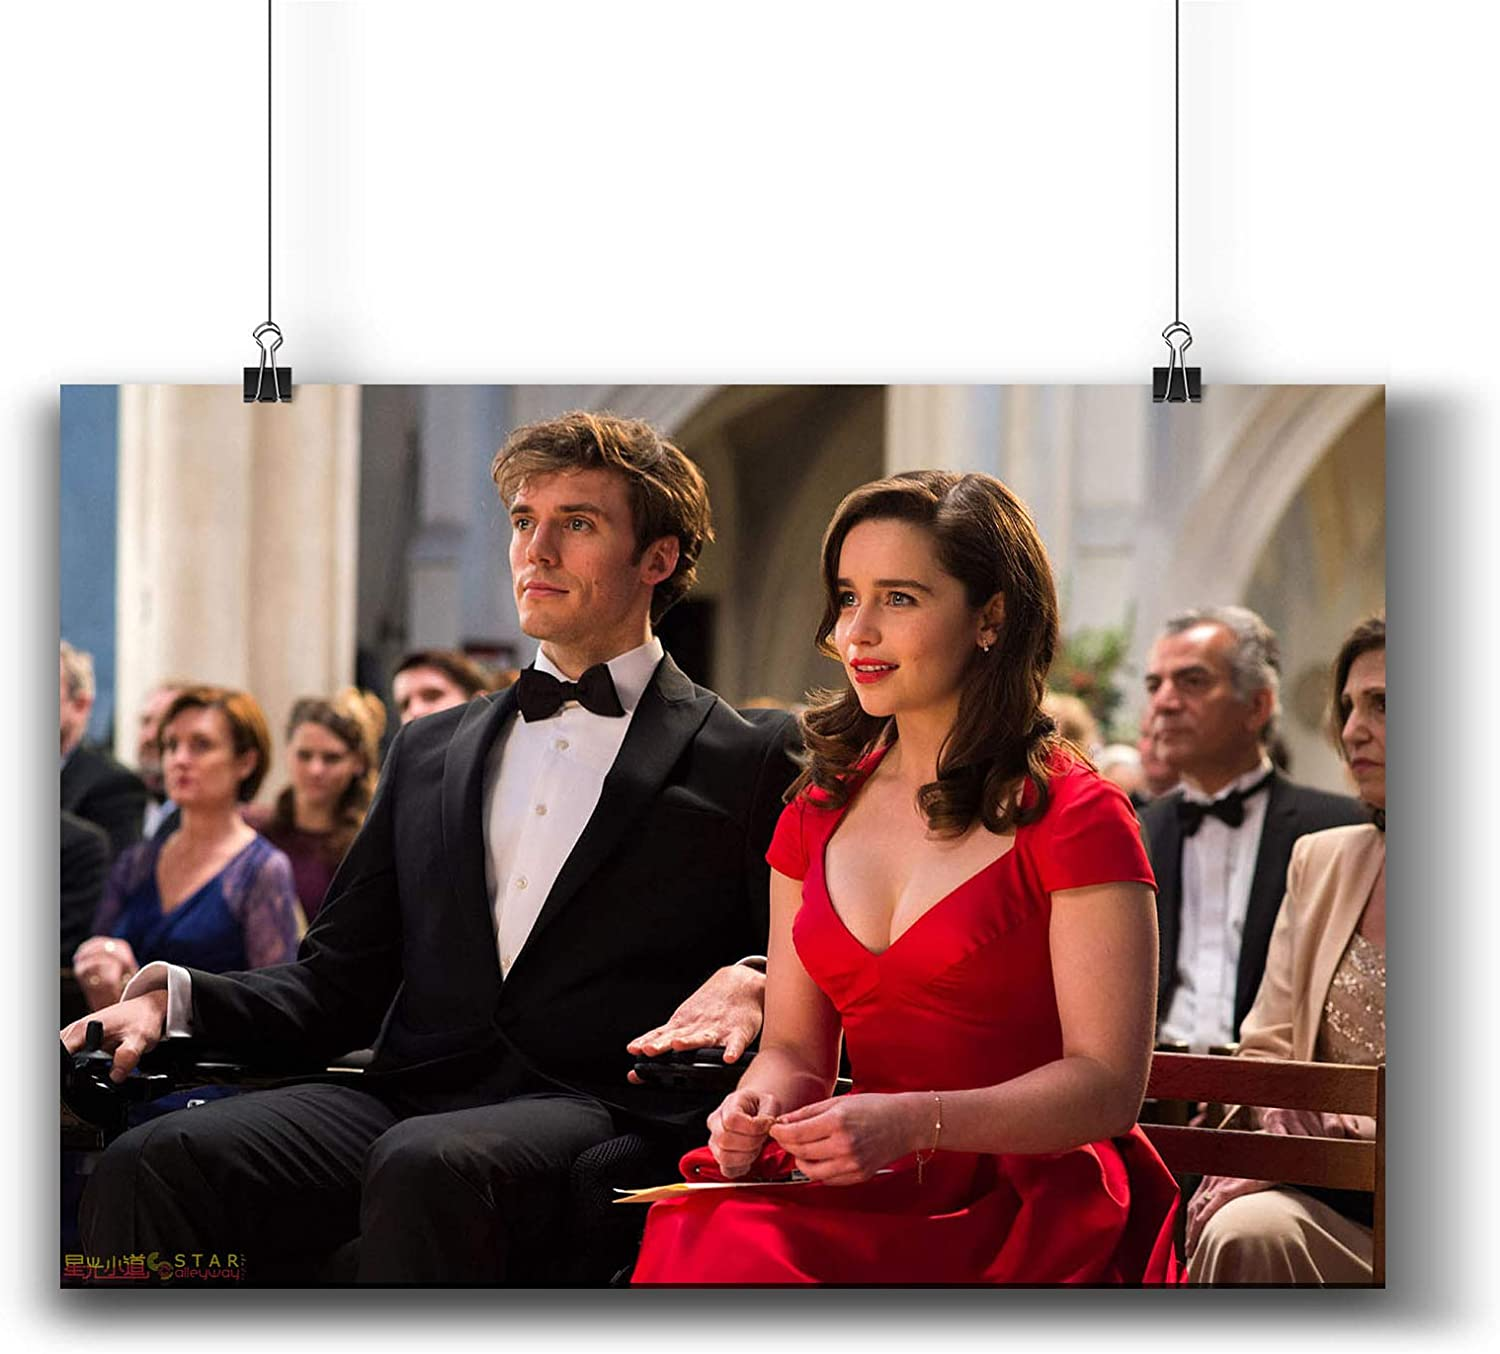 Amazon Com Pentagonwork Me Before You 2016 Movie Photo Poster Prints 809 002 Reprint Signed Casts Wall Art Decor Gift A3 11x17inch 29x42cm Posters Prints